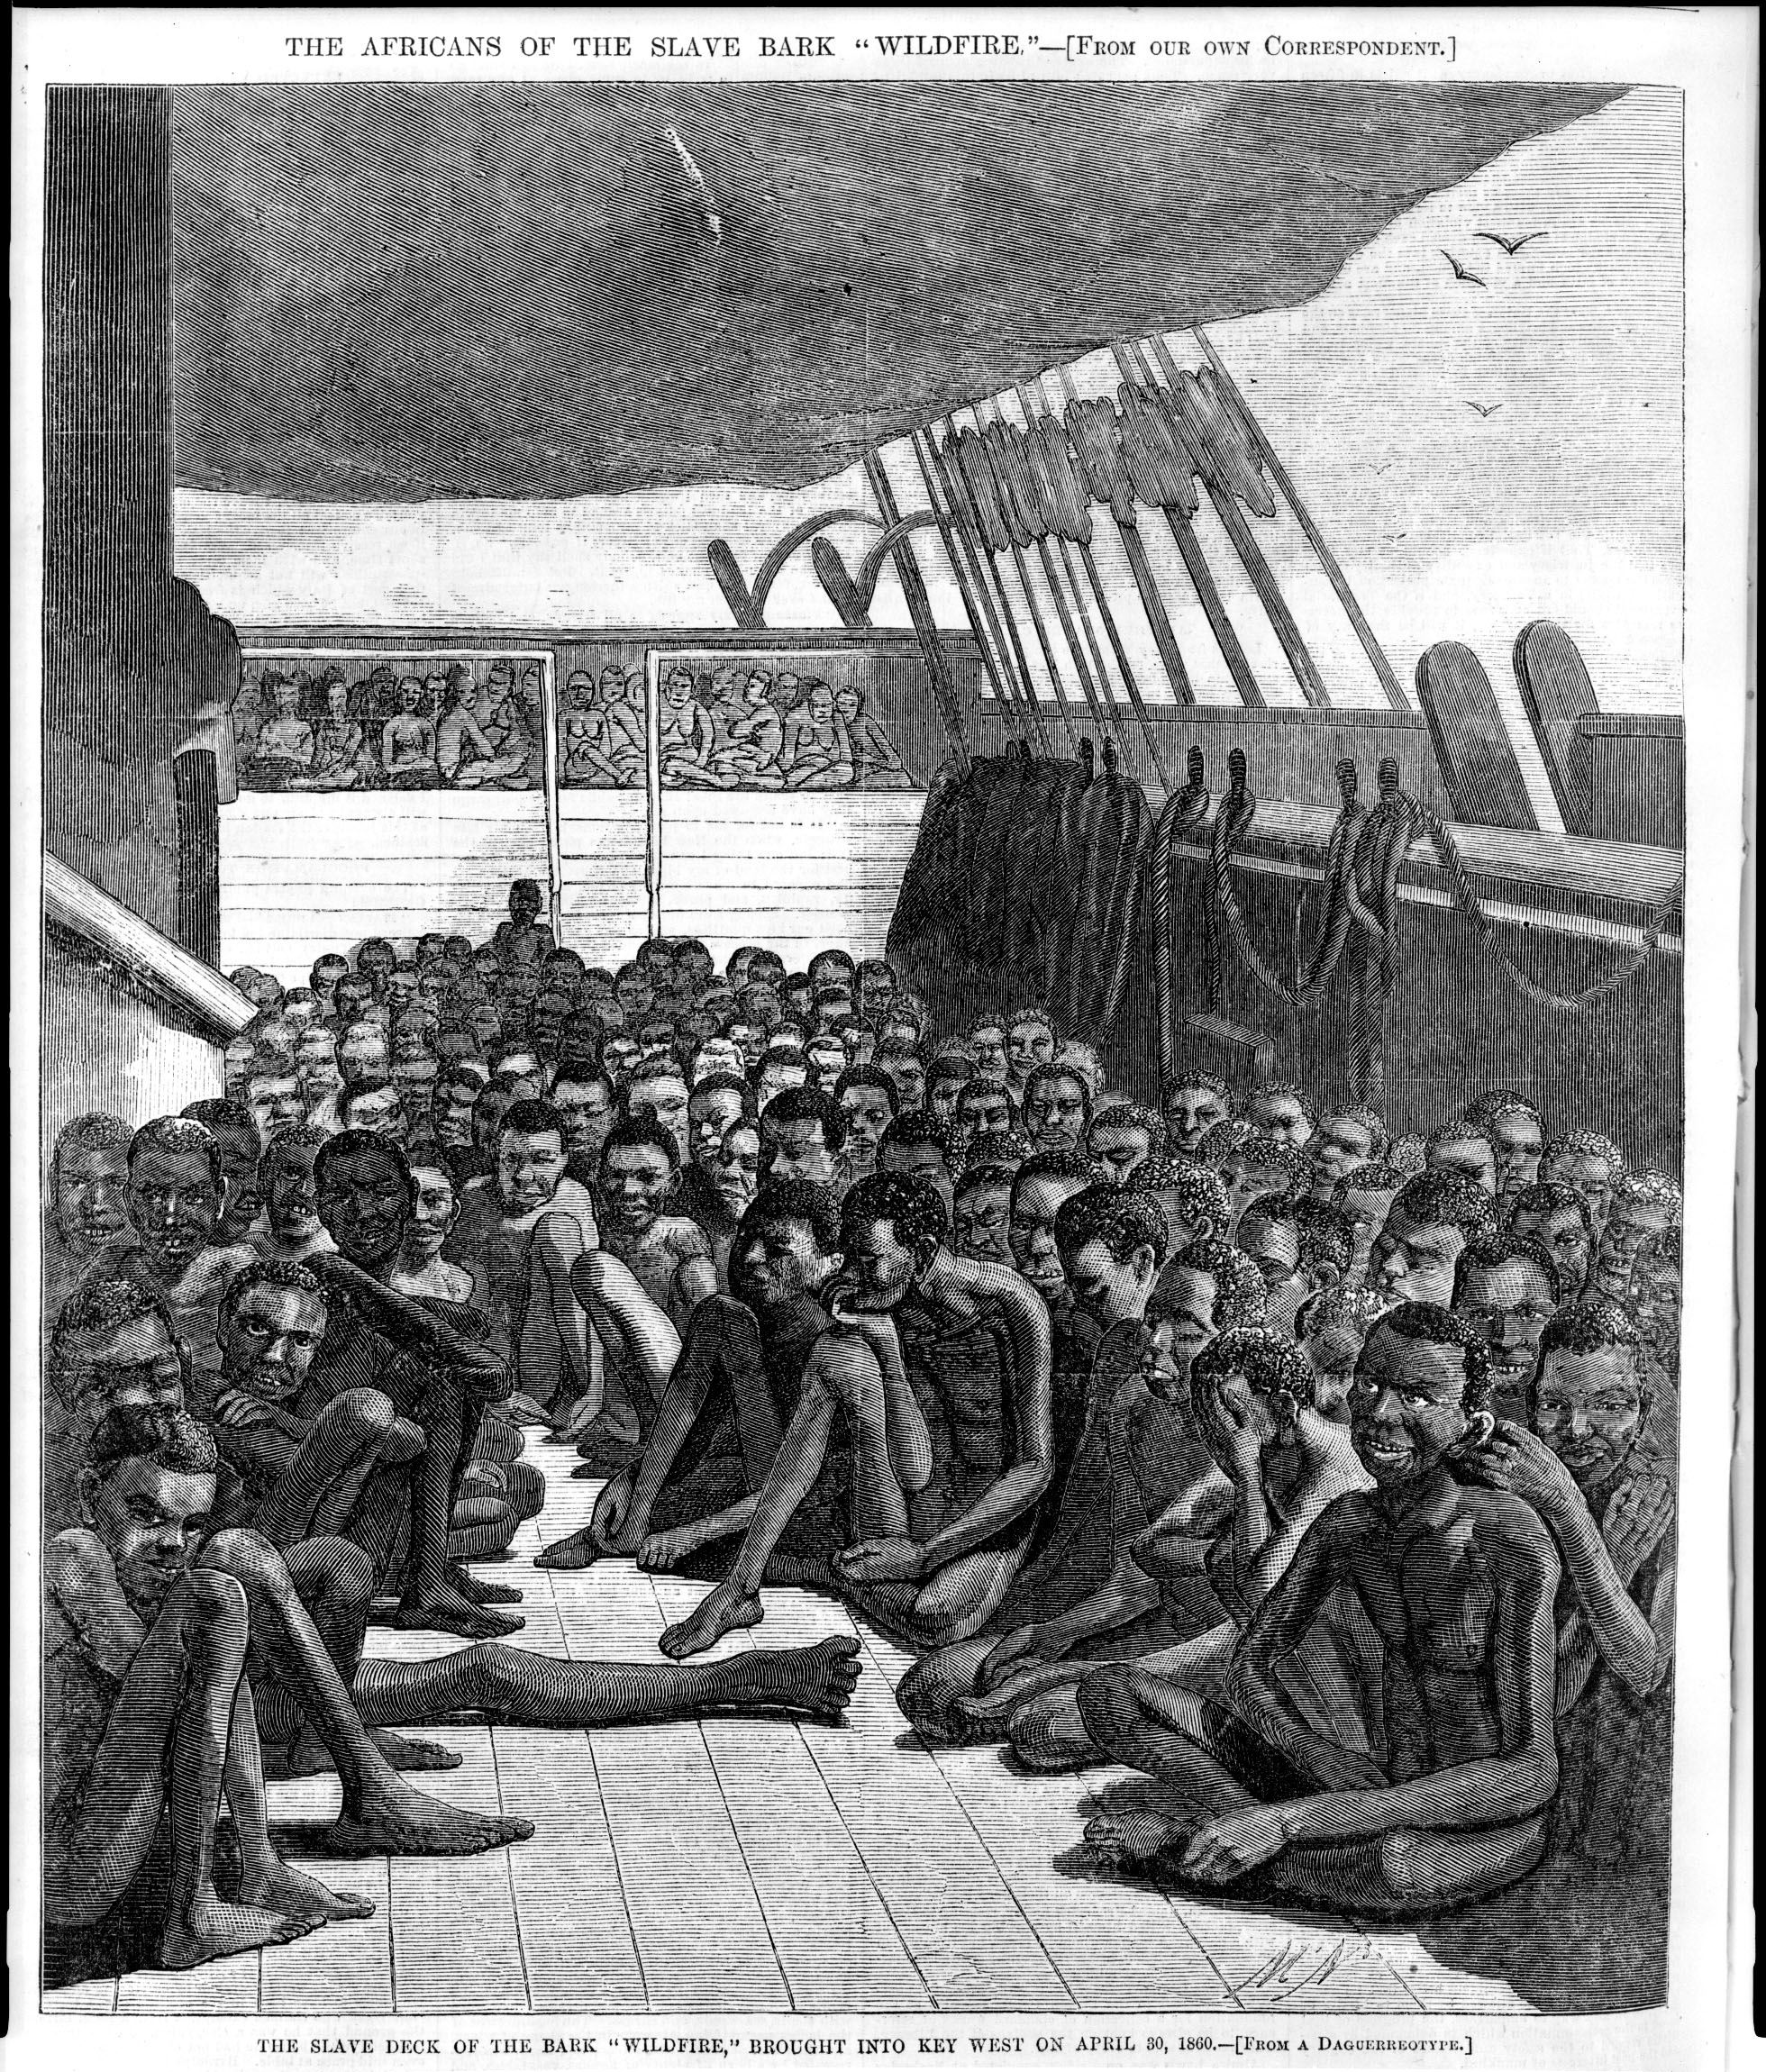 2 Top Deck of French Slave Ship